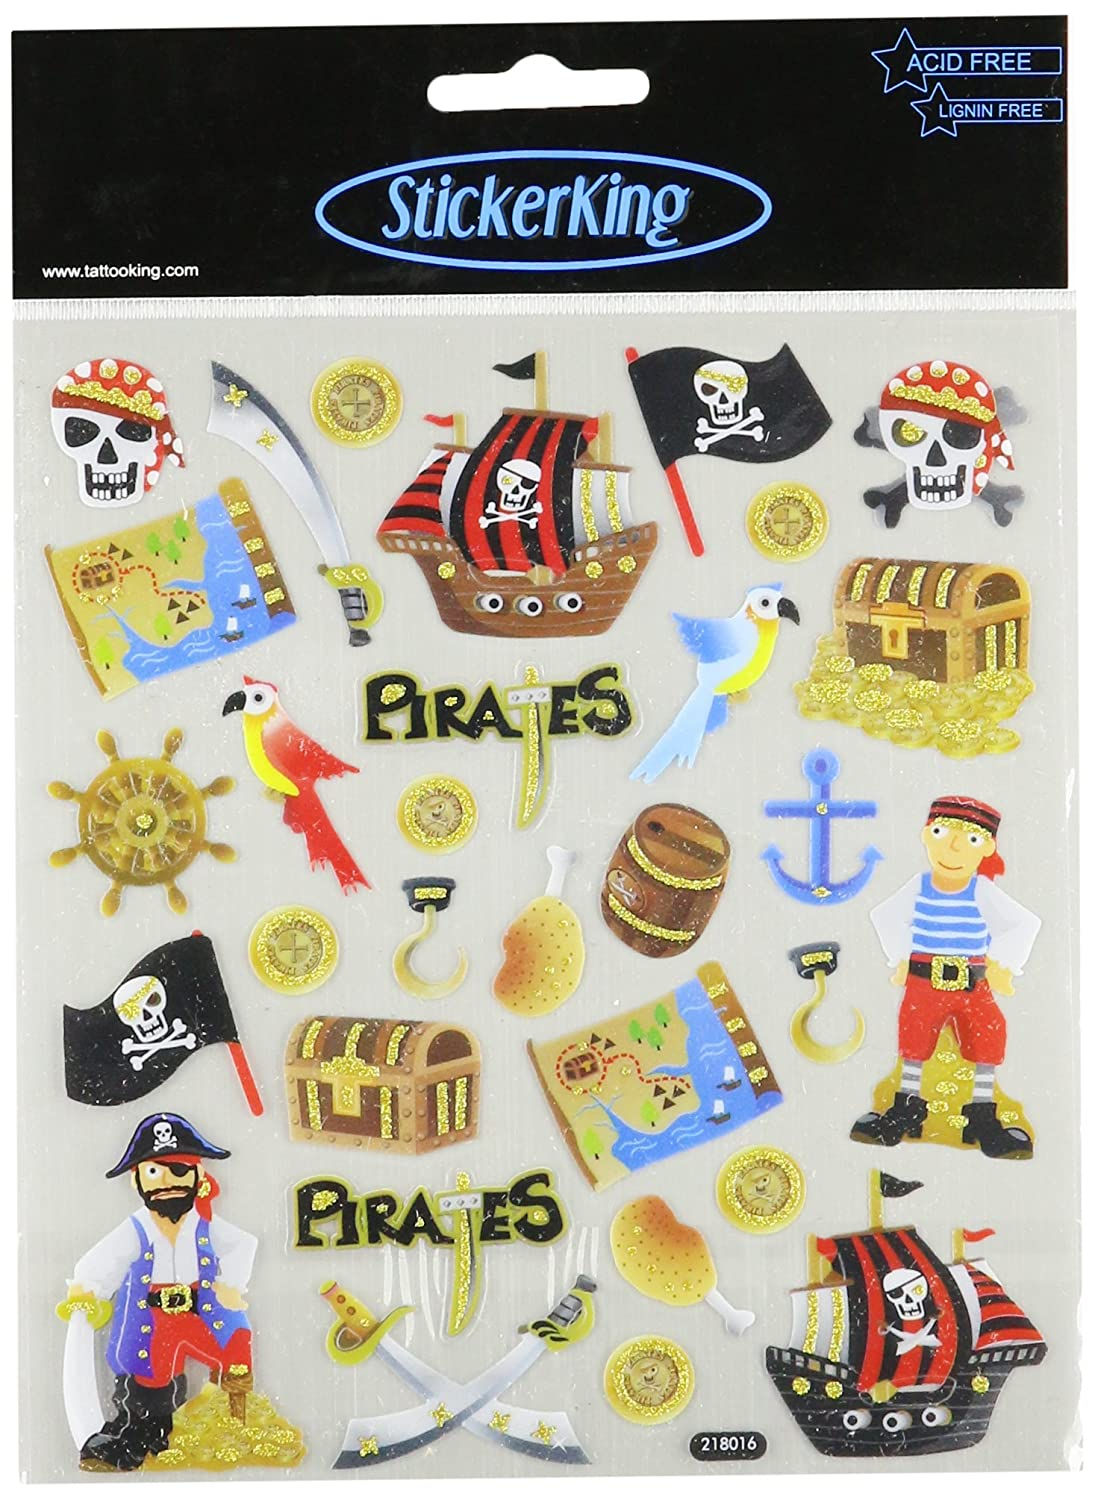 In Network SK129MC-4511 Tattoo King Multi-Colored Stickers-Pirates Glitter Notions